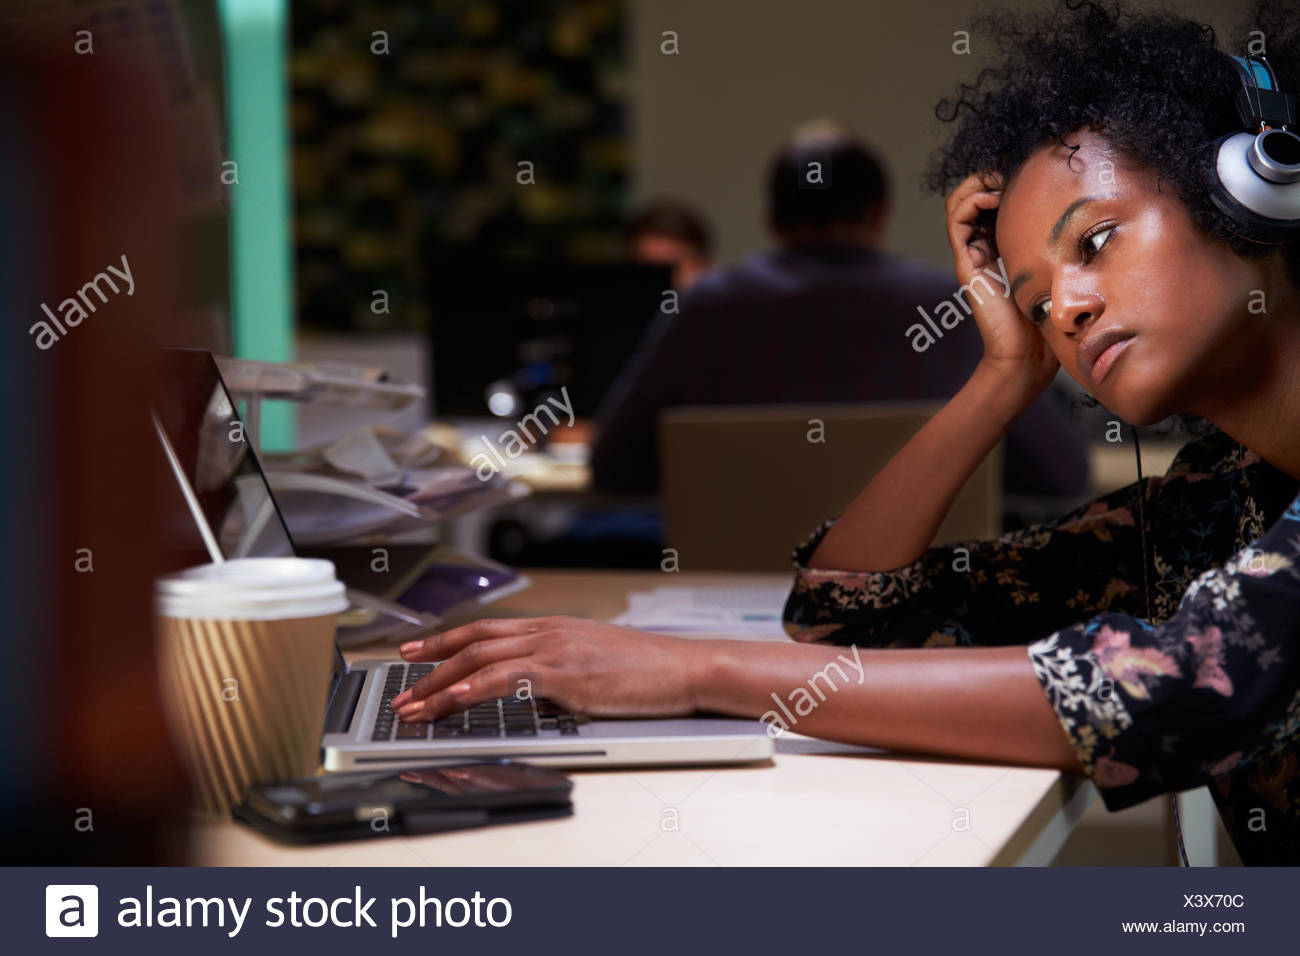 Female Office Worker With Coffee At Desk Working Late - Stock Image